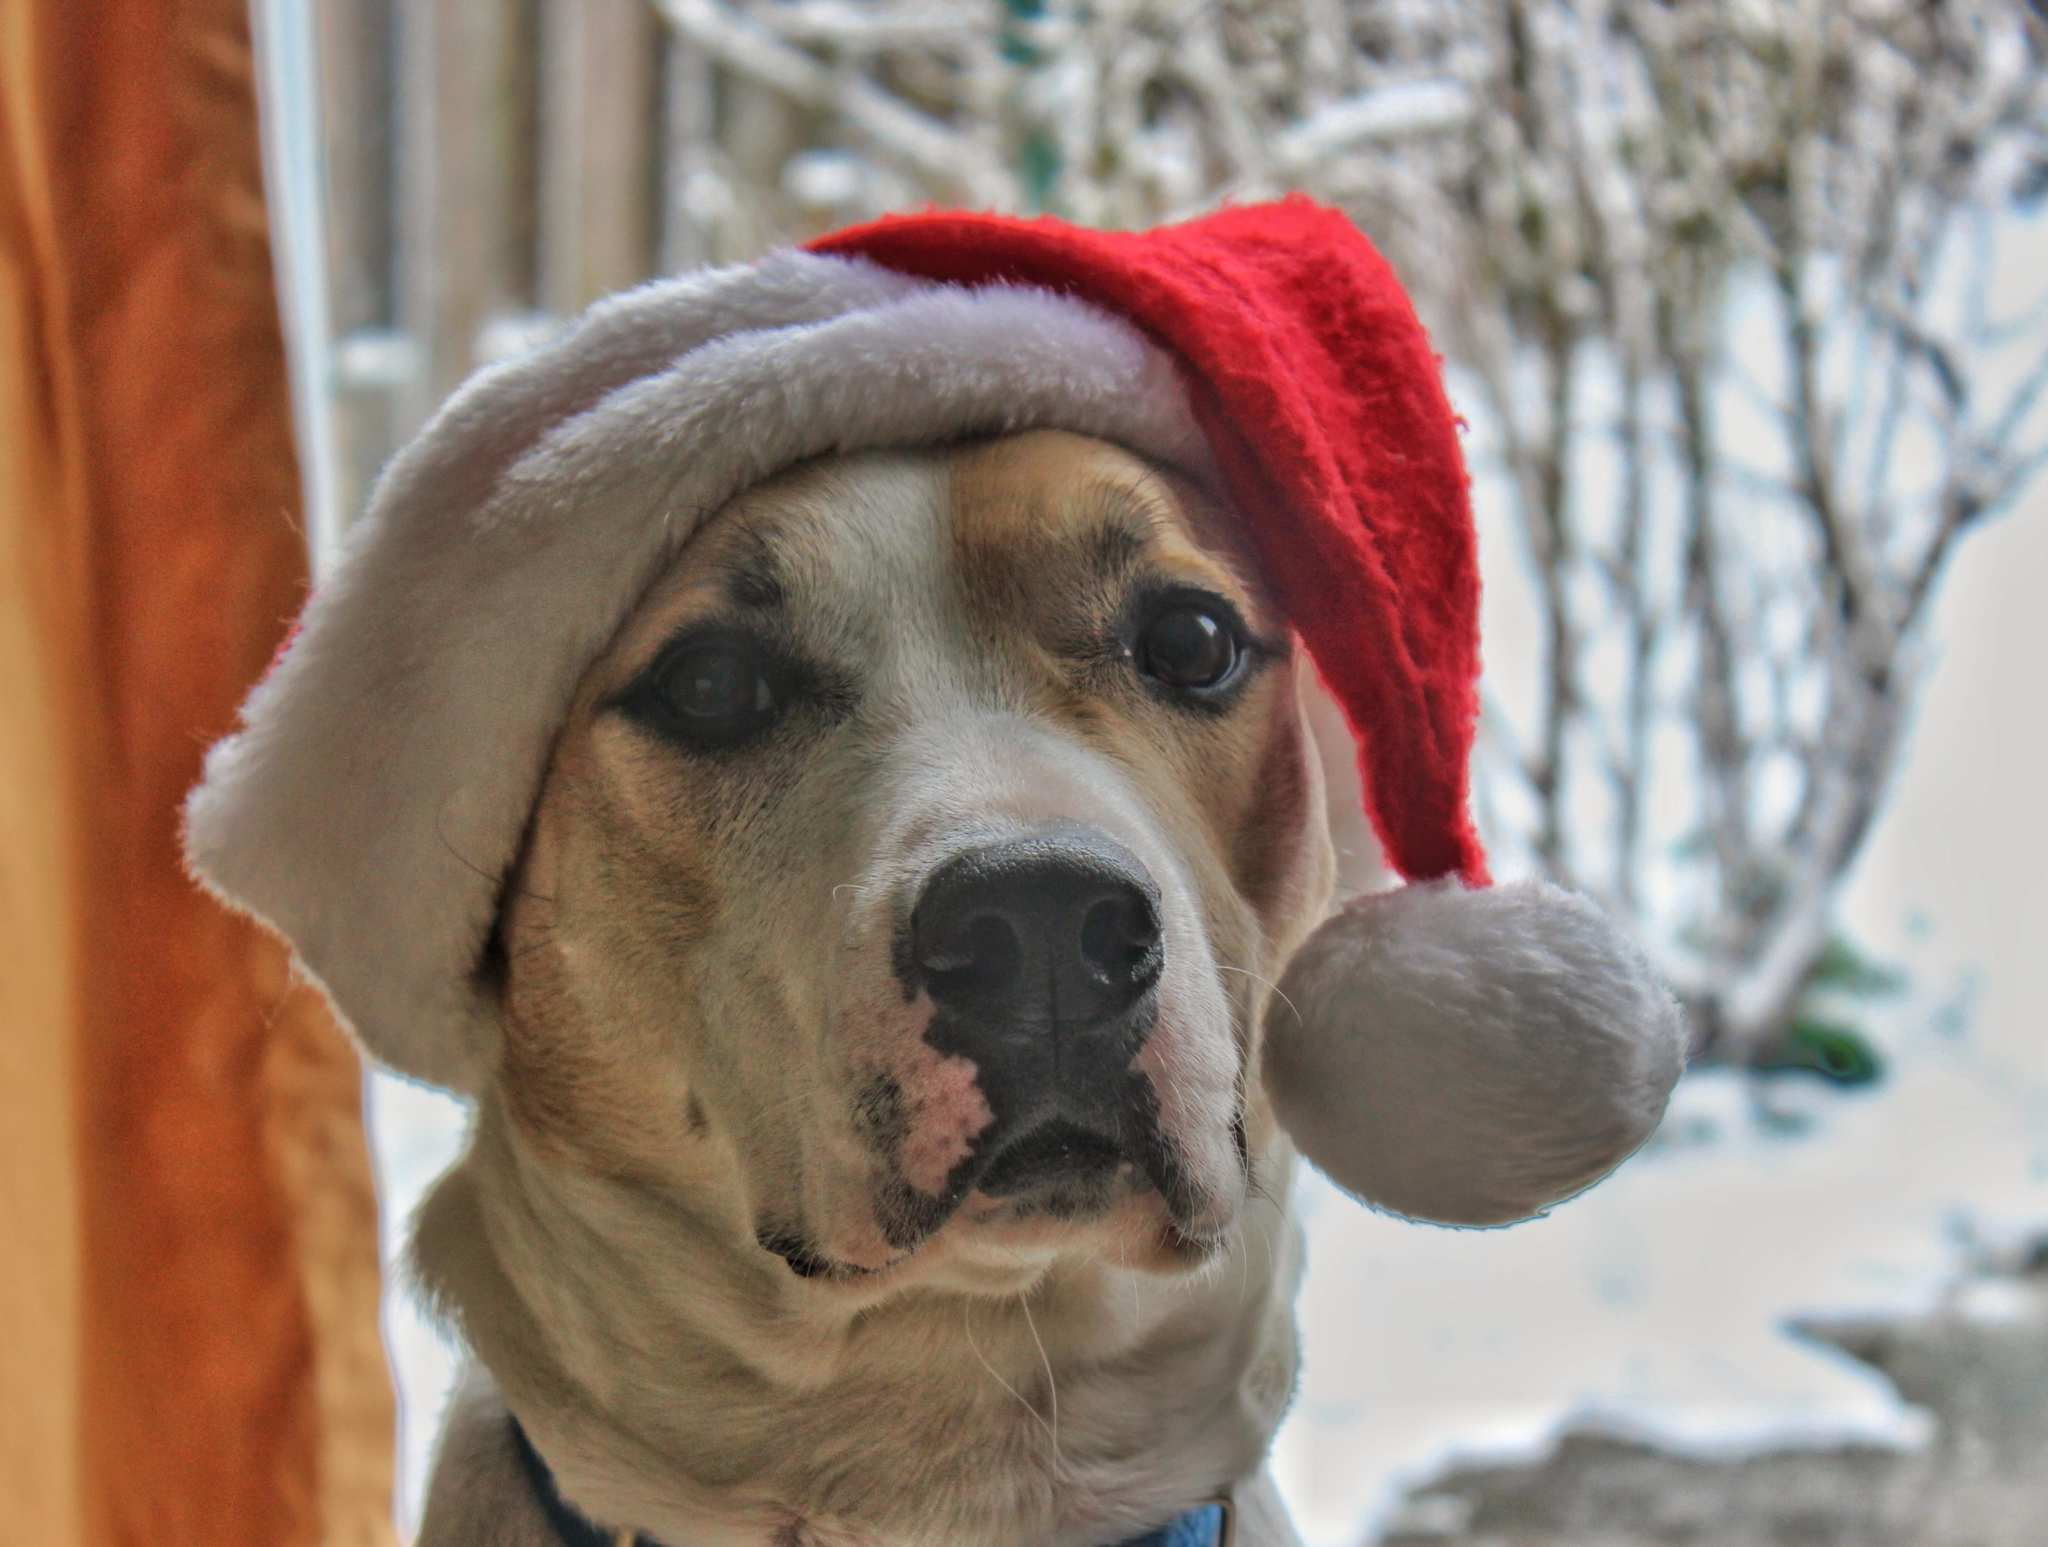 A large multi-colored dog in a Santa hat seen in front of a window showing a snowy scene. You'll even find something for your four-legged friends in MInistry of Hemp's Holiday Hemp Gift Guide!